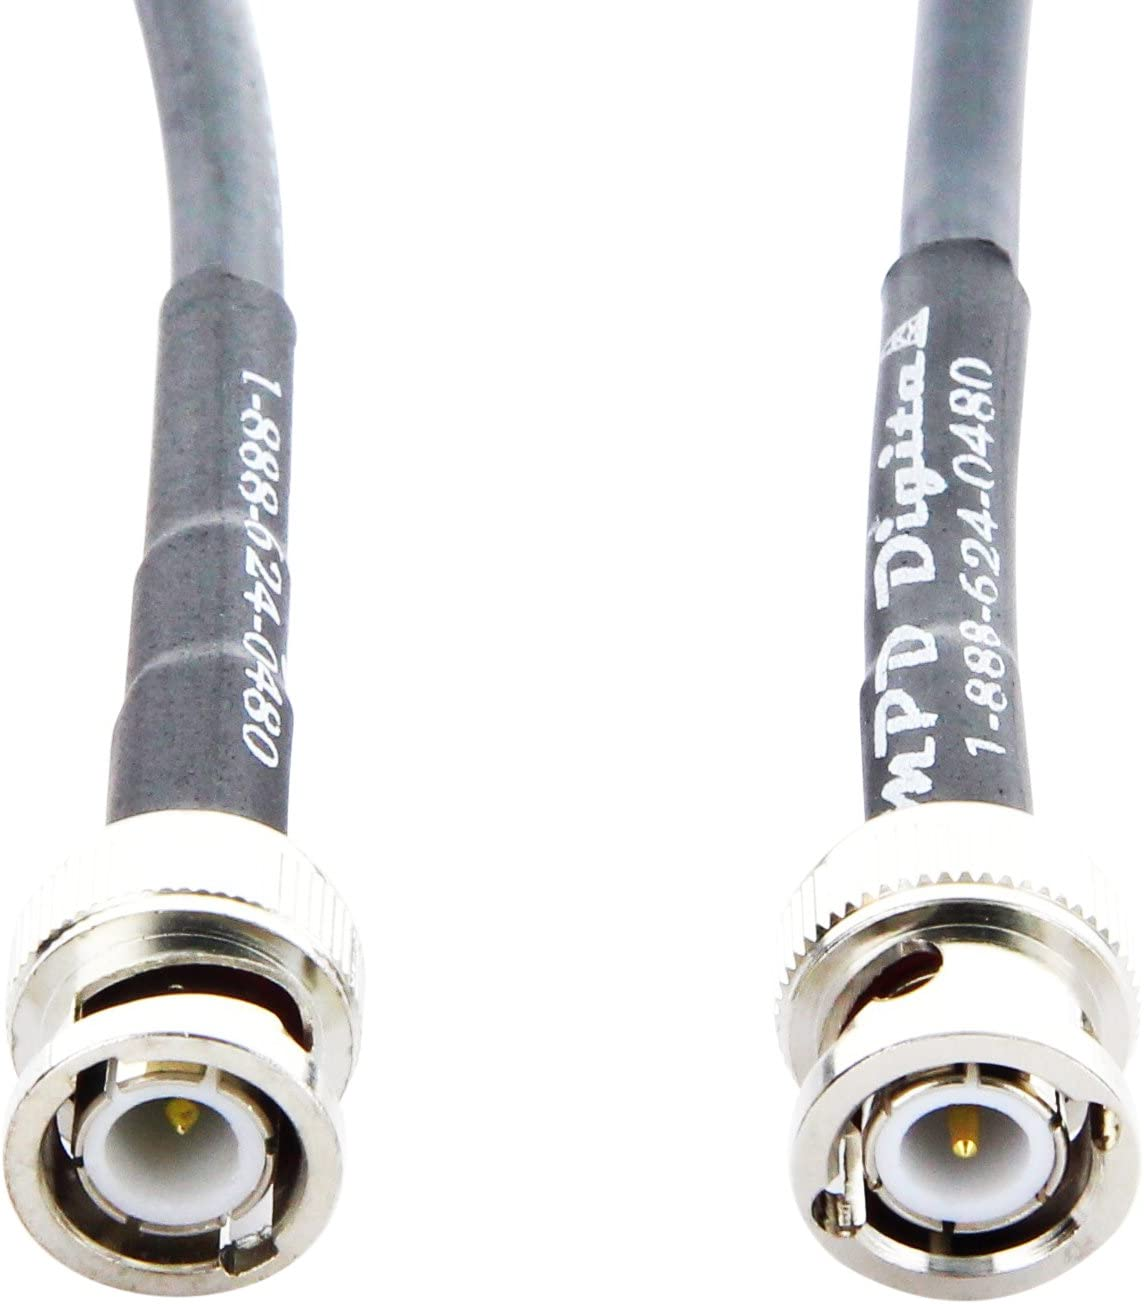 PL259 CablesOnline 2ft Premium Grade RG8x Coax UHF R-UN002 Male to N-Type Male Antenna Cable